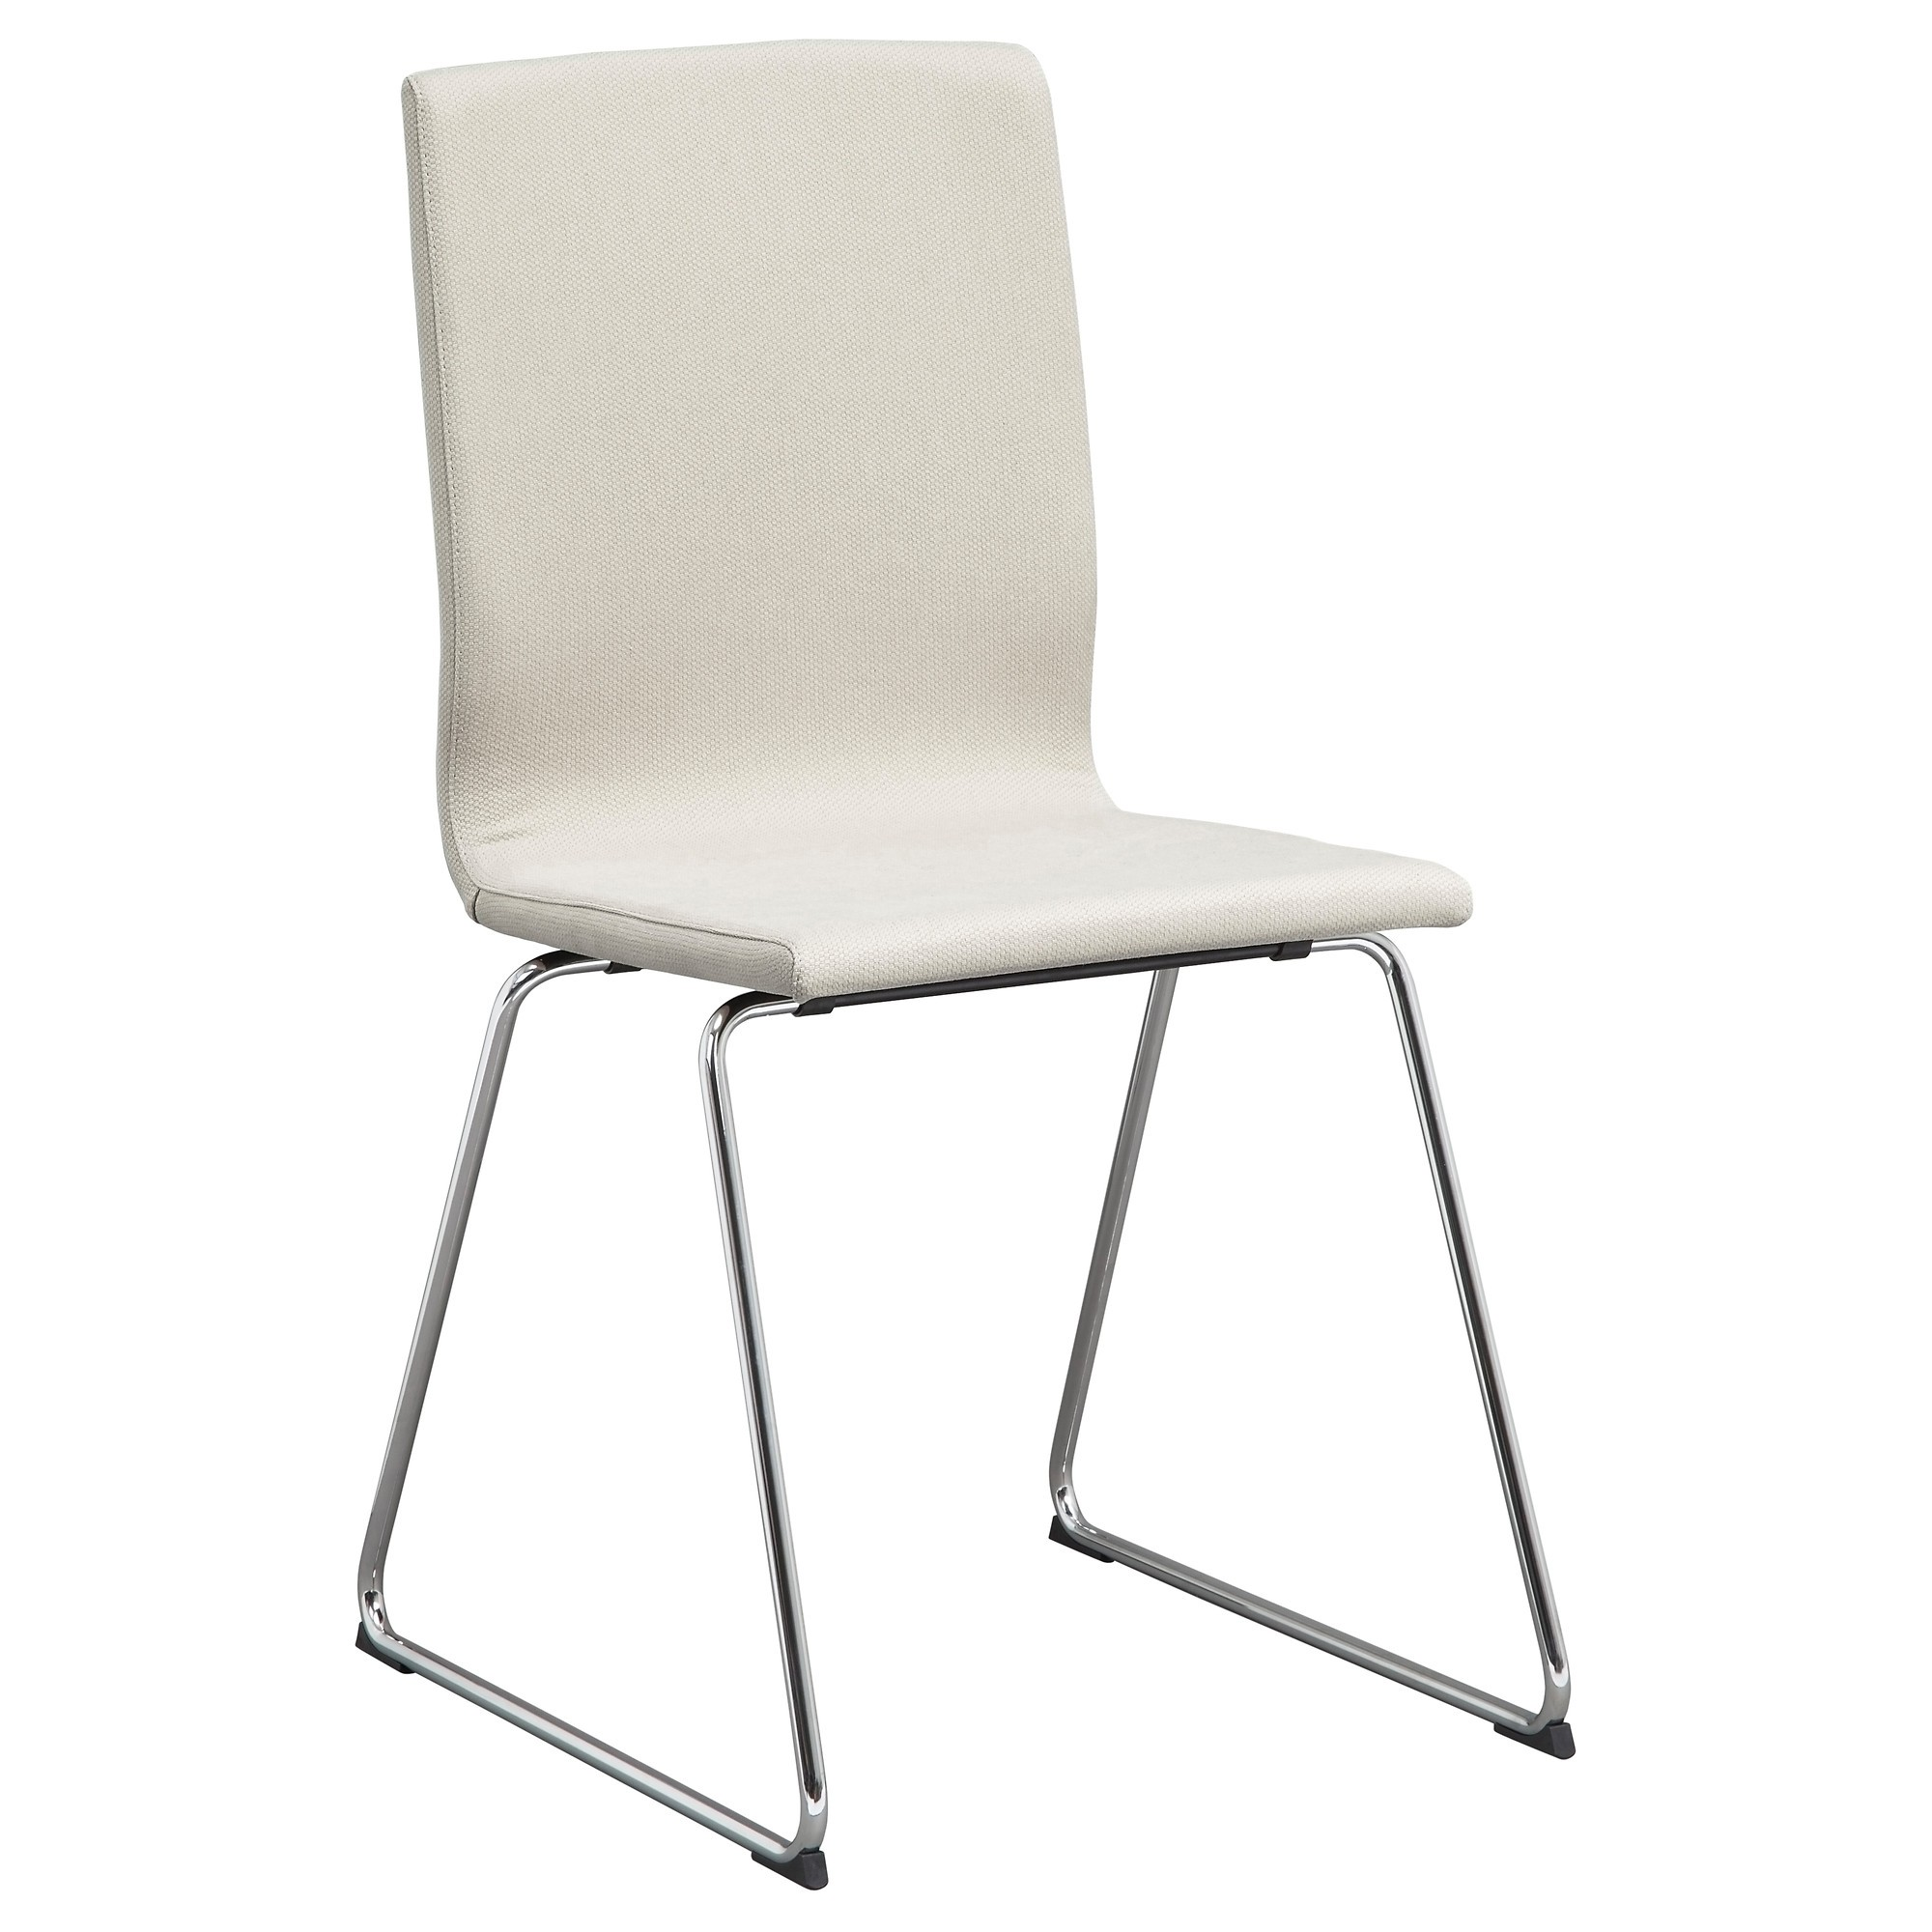 Chaises de sejour ikea chaise id es de d coration de for Chaise de sejour